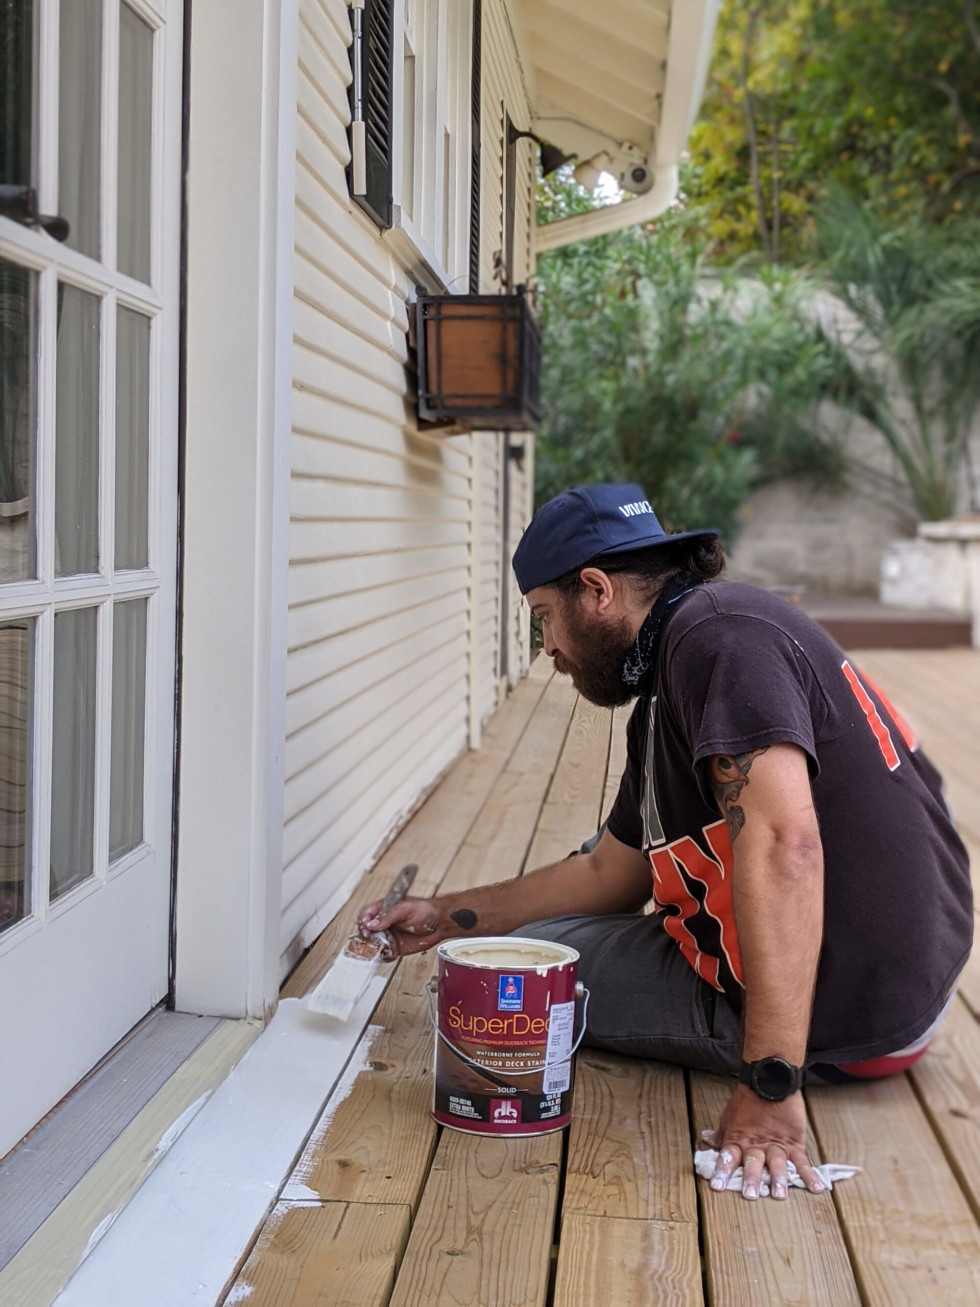 A member of The Handyband Collective sits on a pool deck, trimming the wood against the house with a white paint brush.